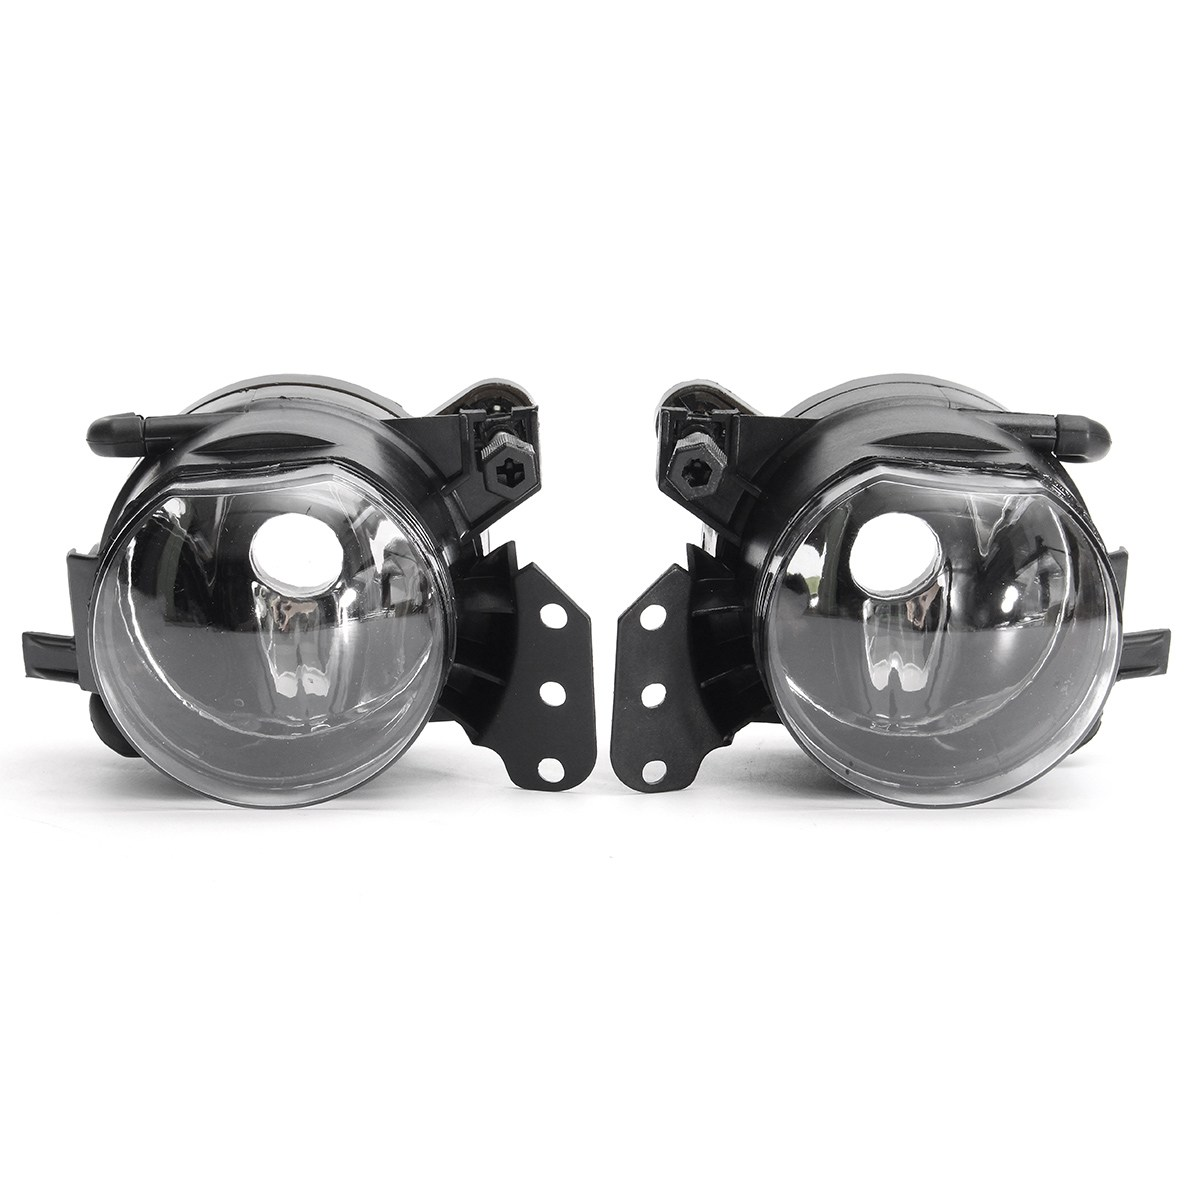 1 Pair Front Car Fog Lights Lamps For BMW E60 E90 E63 E46 Sedan Convertible 3/5/6 Series pair new high quality front fog lamp lights driving lamps clear lens car styling for bmw e39 5 series 2001 2003